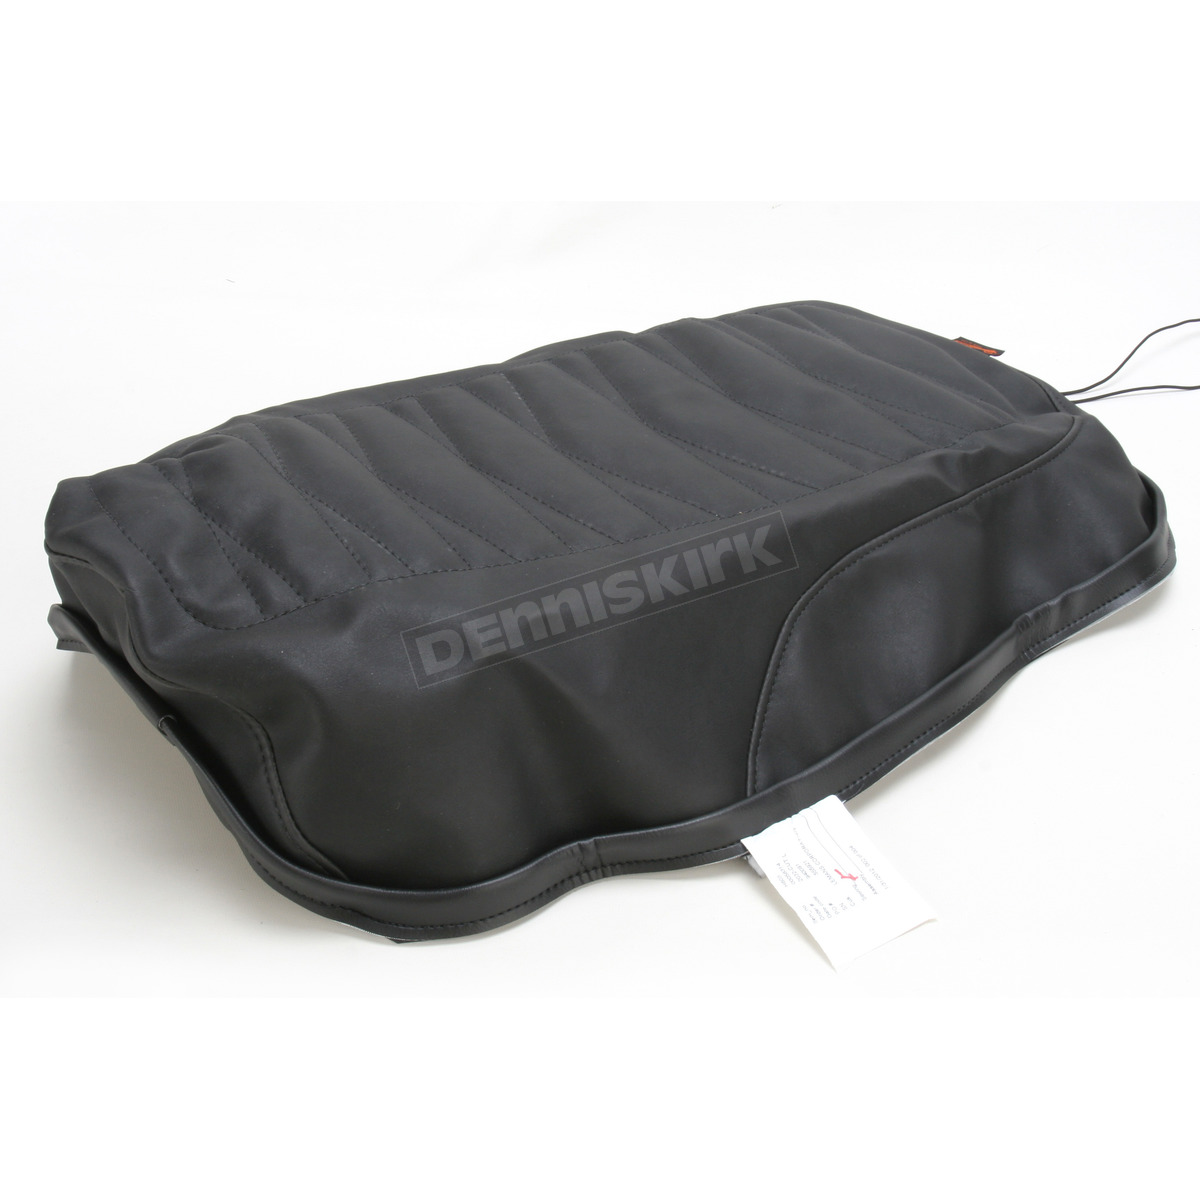 Motorcycle Seat Replacement : Saddlemen replacement seat cover h cruiser motorcycle